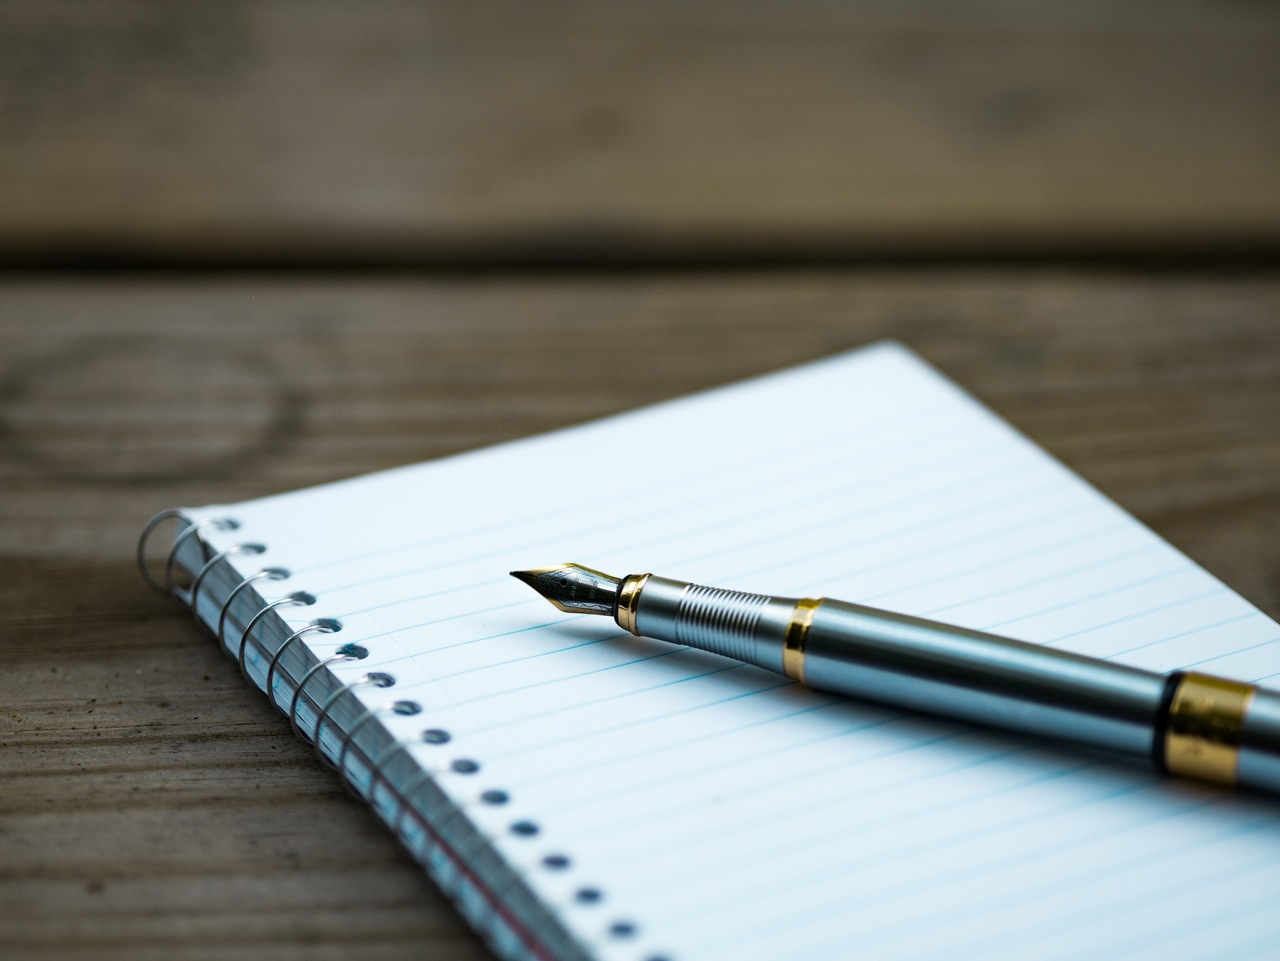 What are some free writing classes?